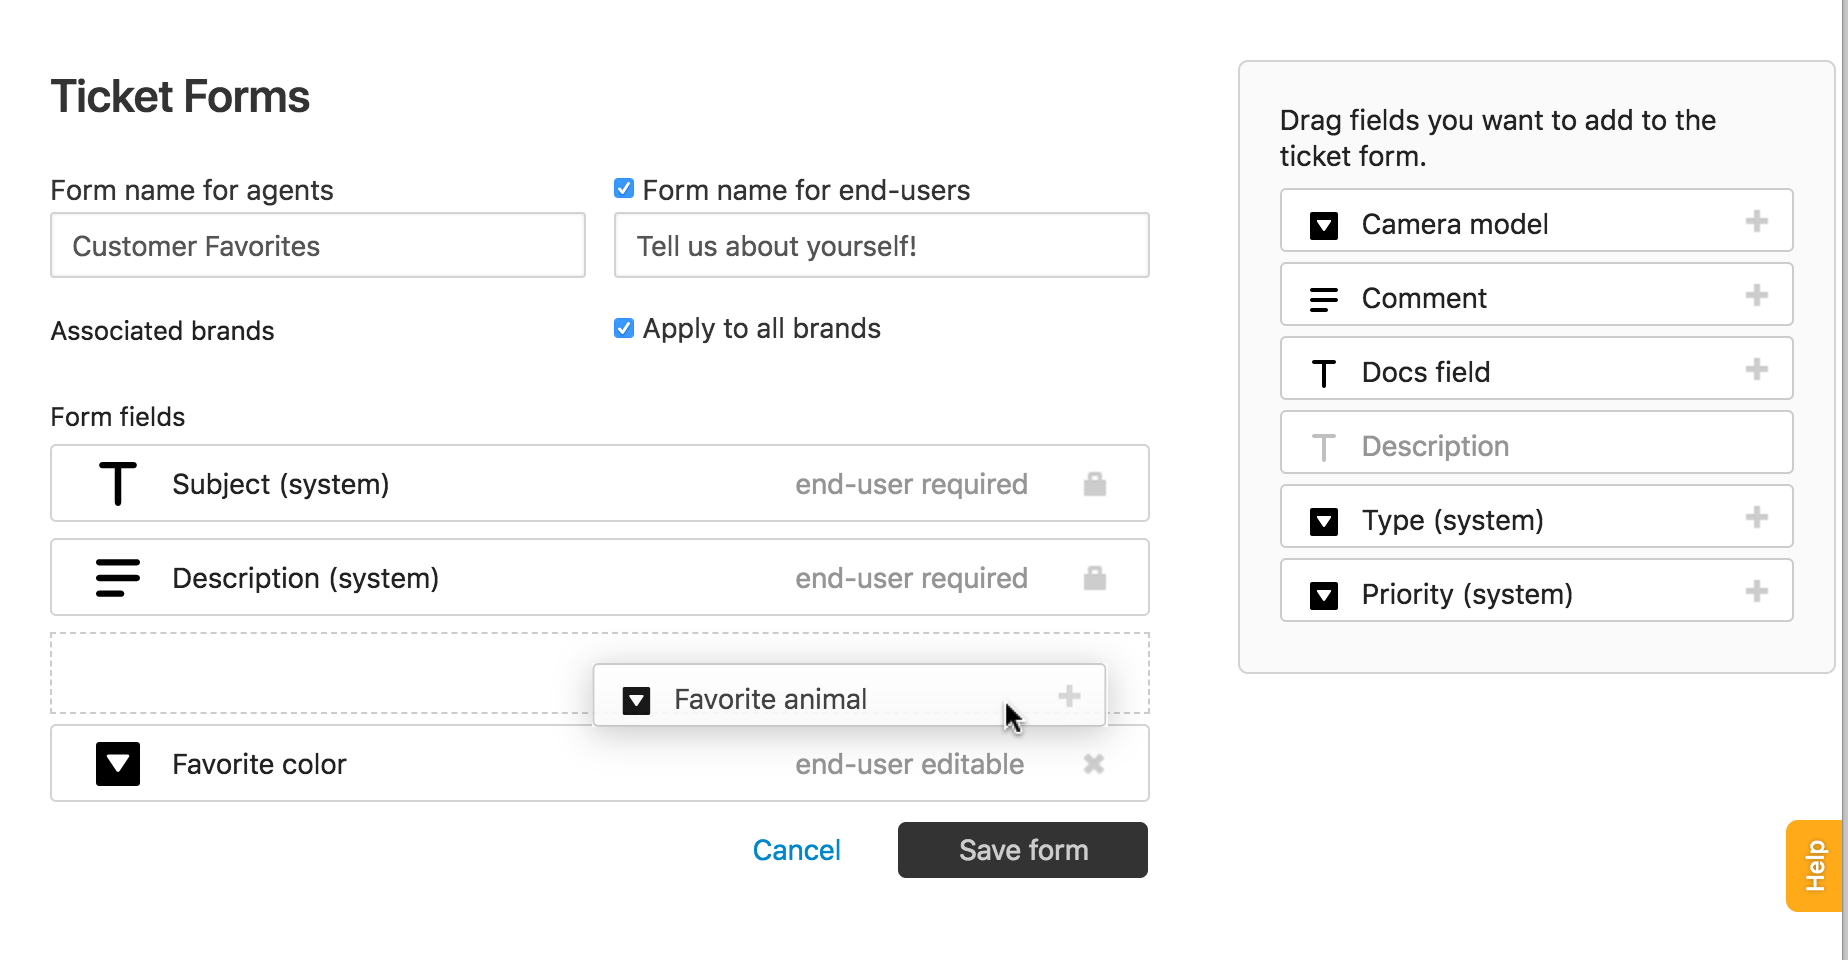 Creating ticket forms to support multiple request types